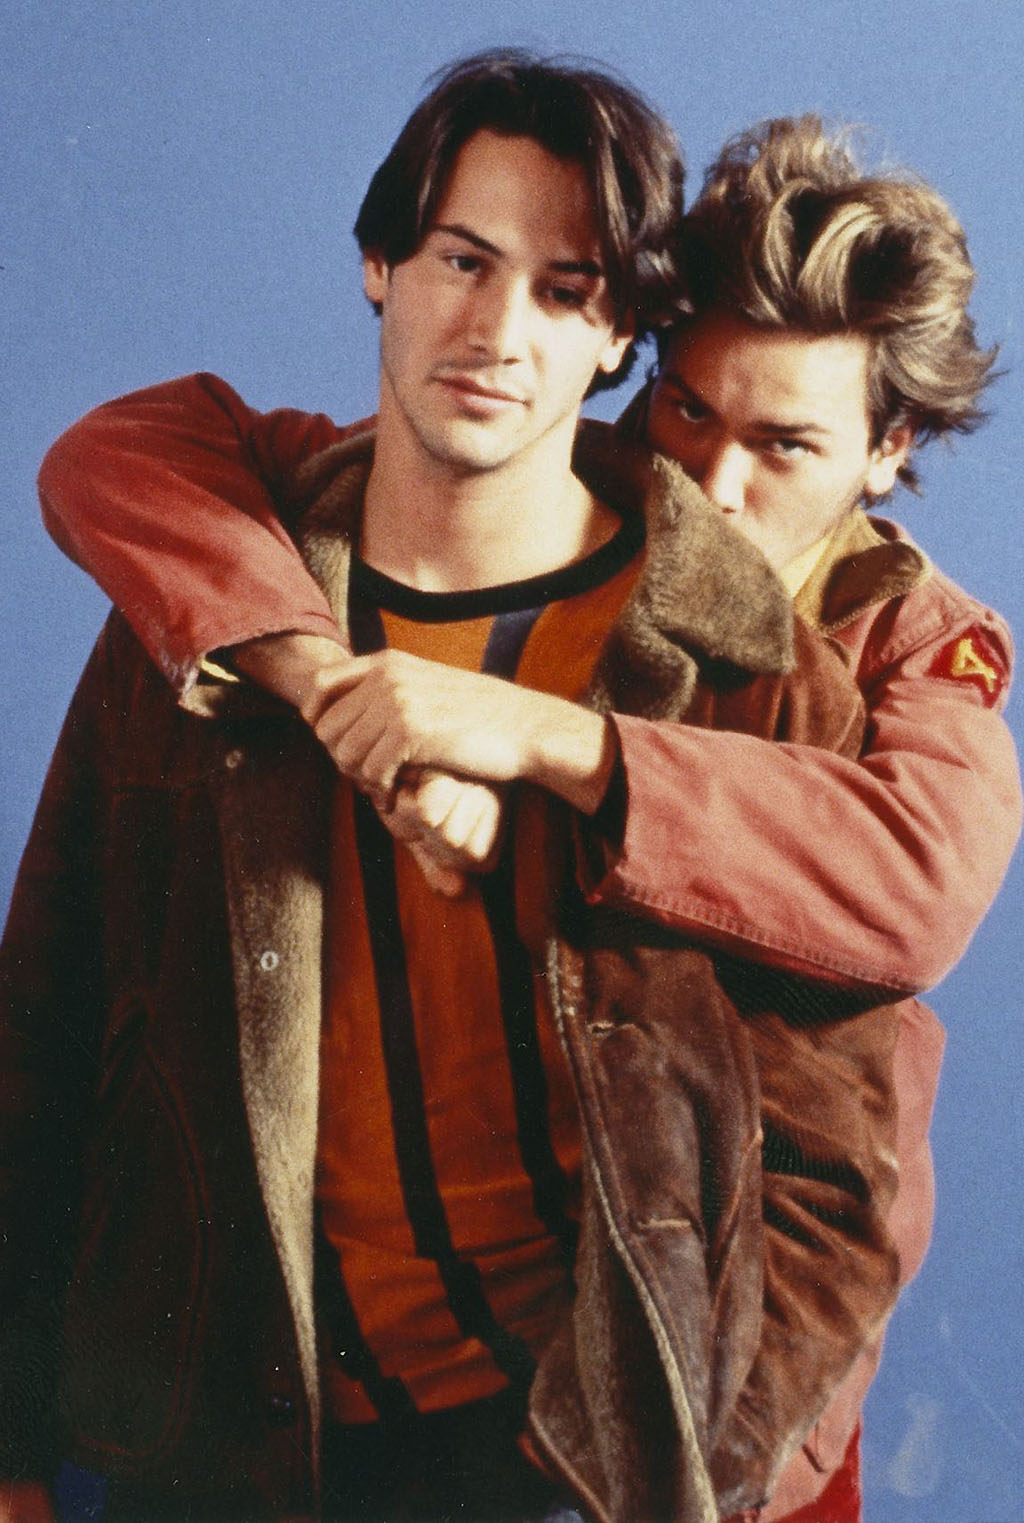 life and career of river phoenix Summer phoenix summer joy phoenix  she is the youngest sibling of actors/actresses river phoenix  playing the younger sister of real-life brother joaquin.